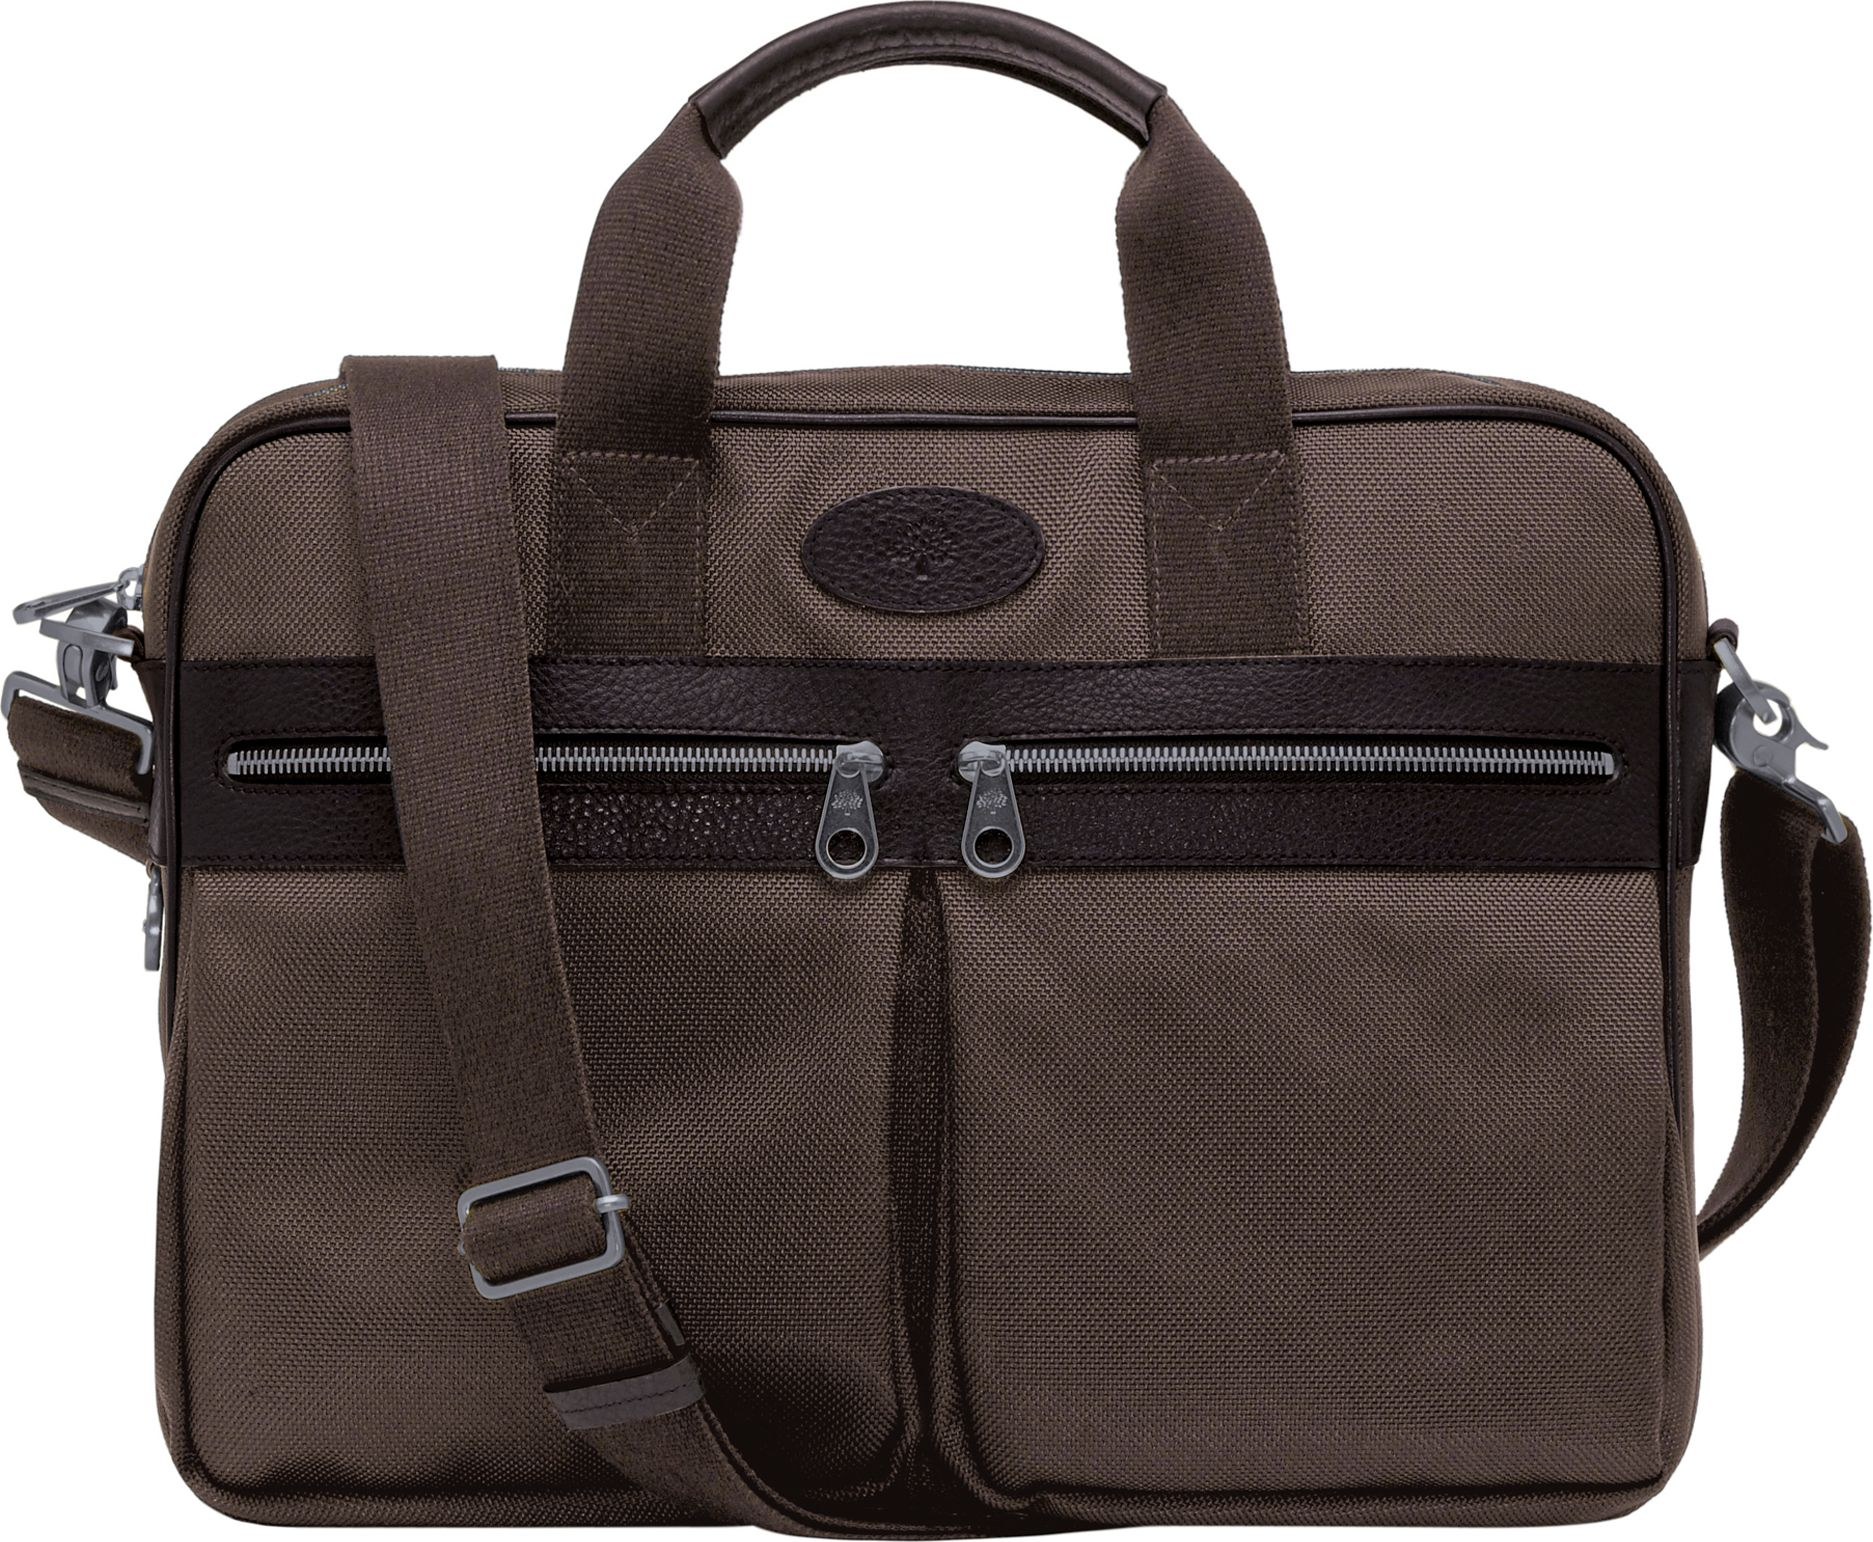 a11327310cb4 Mulberry Henry Laptop Bag in Brown for Men - Lyst